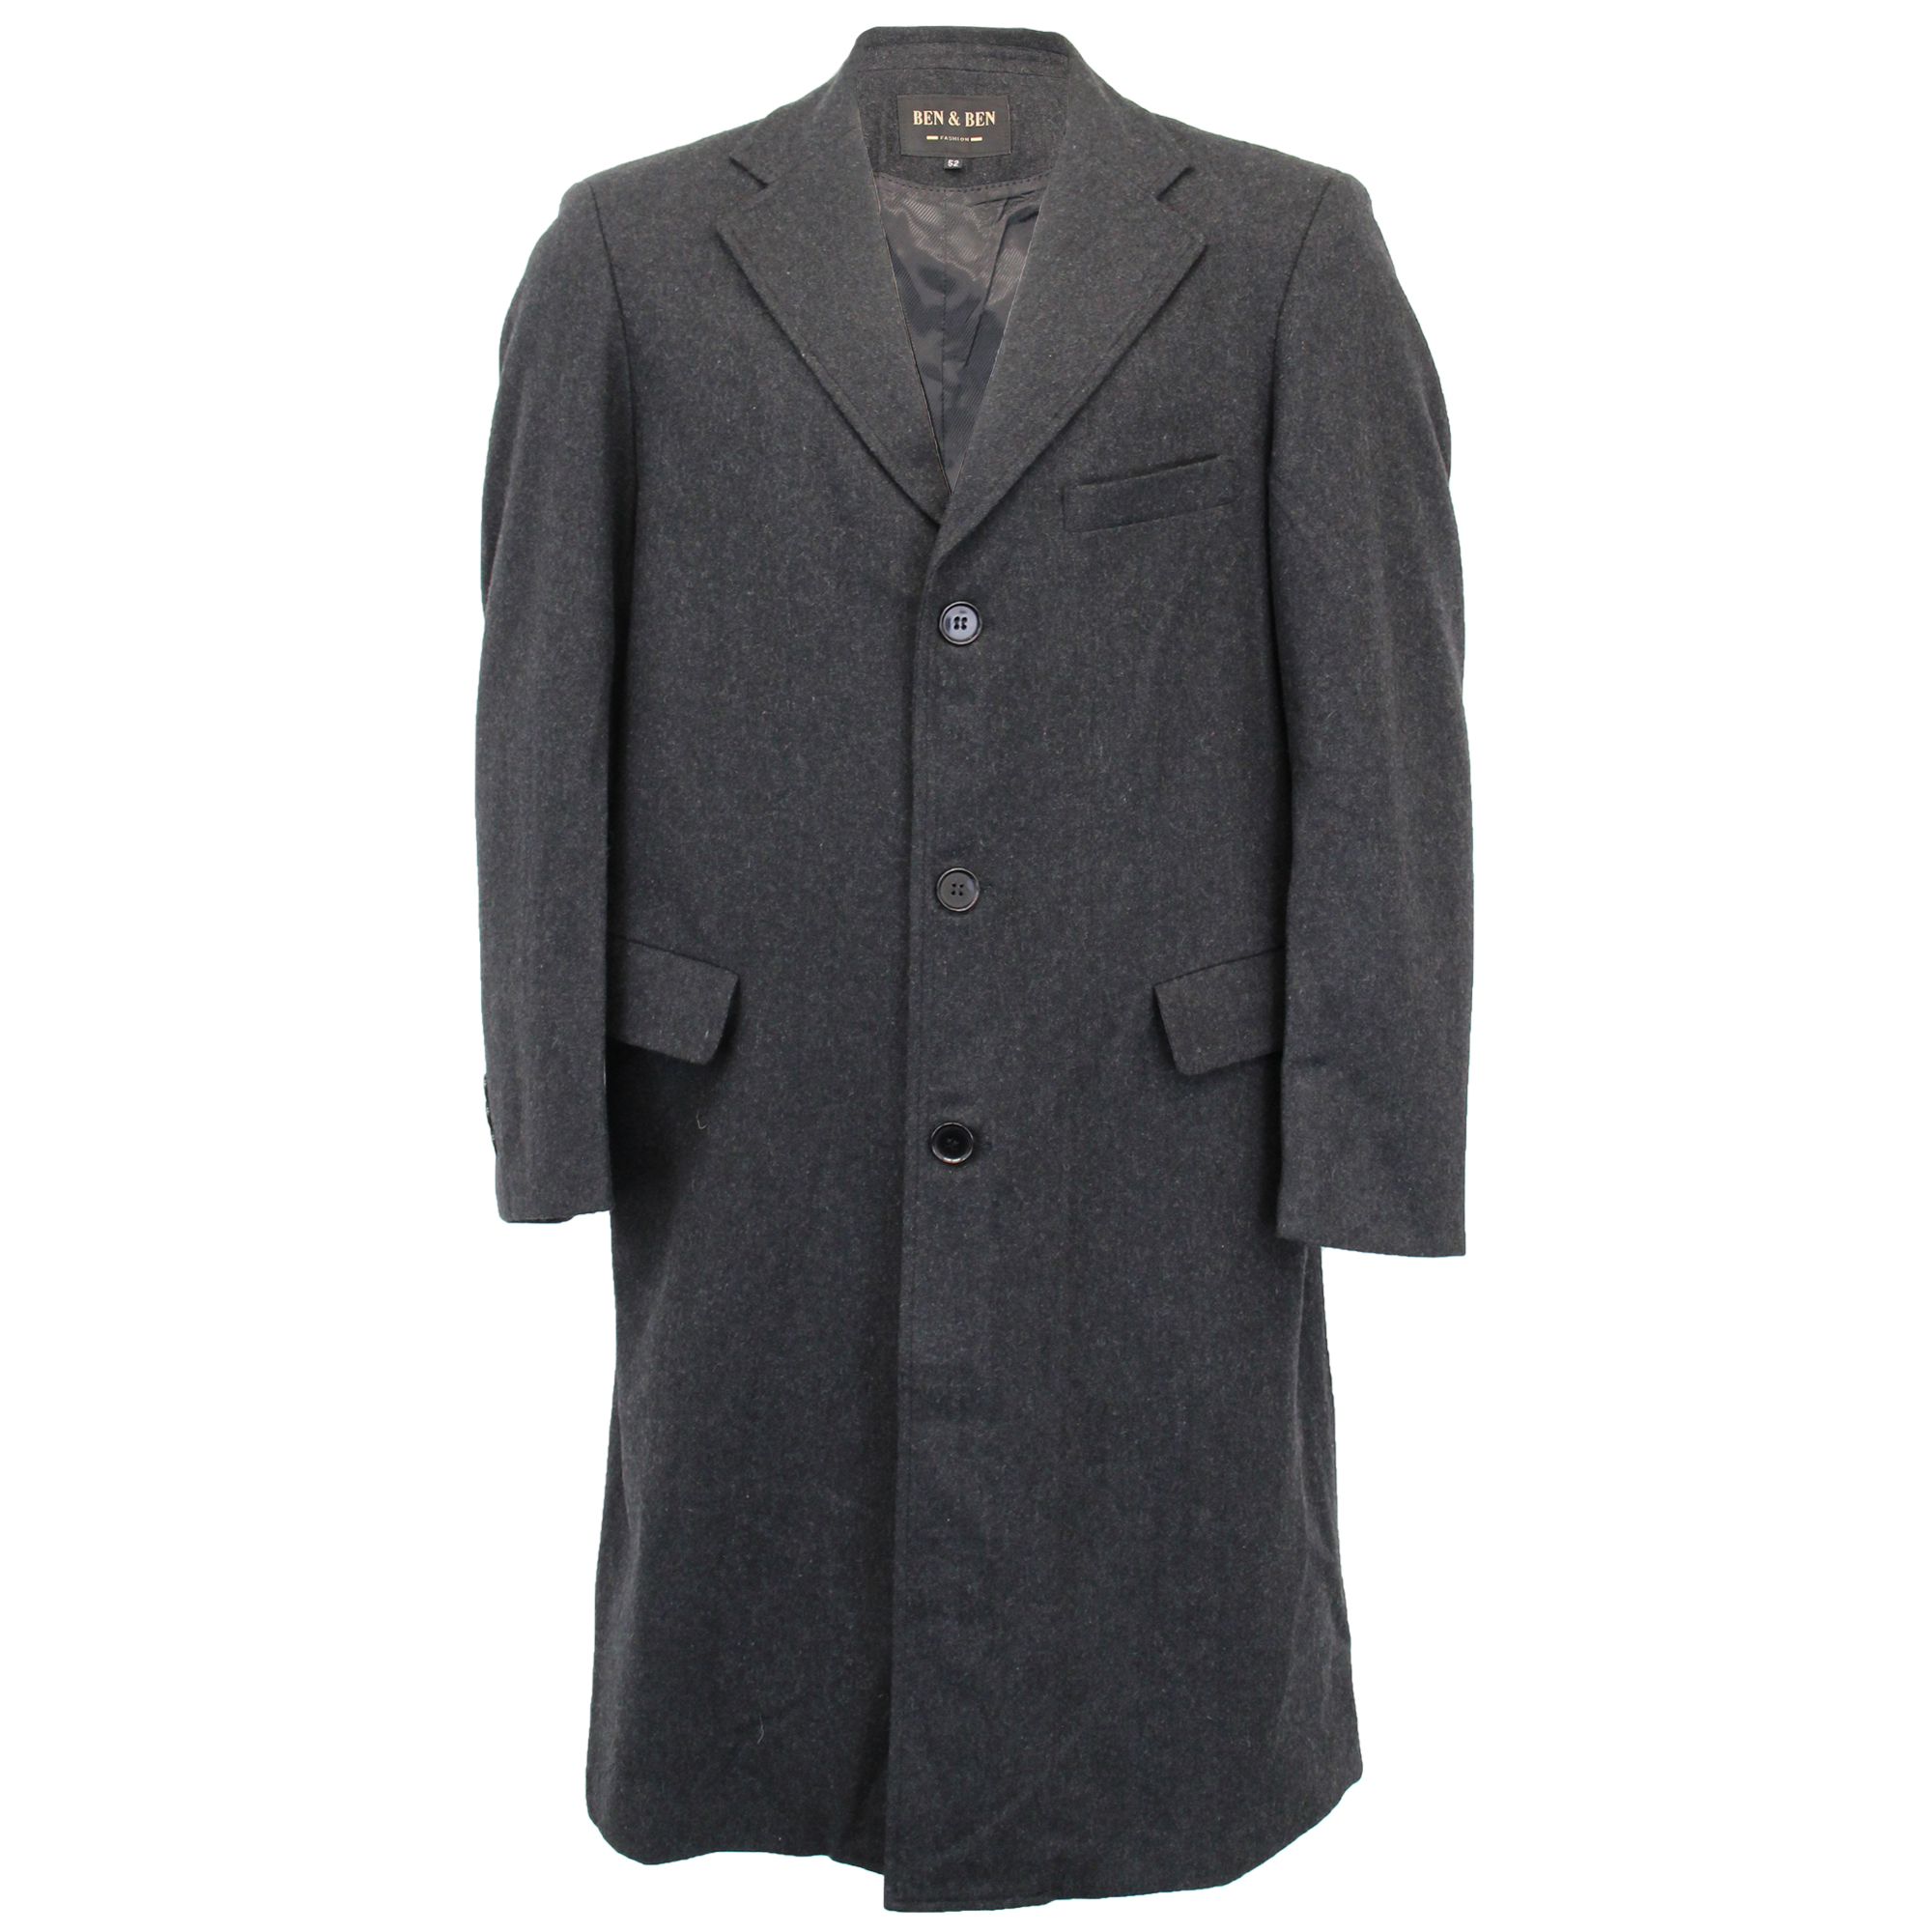 Mens-Wool-Mix-Jacket-Long-Trench-Coat-Collared-Concealed-Button-Lined-Winter-New thumbnail 8